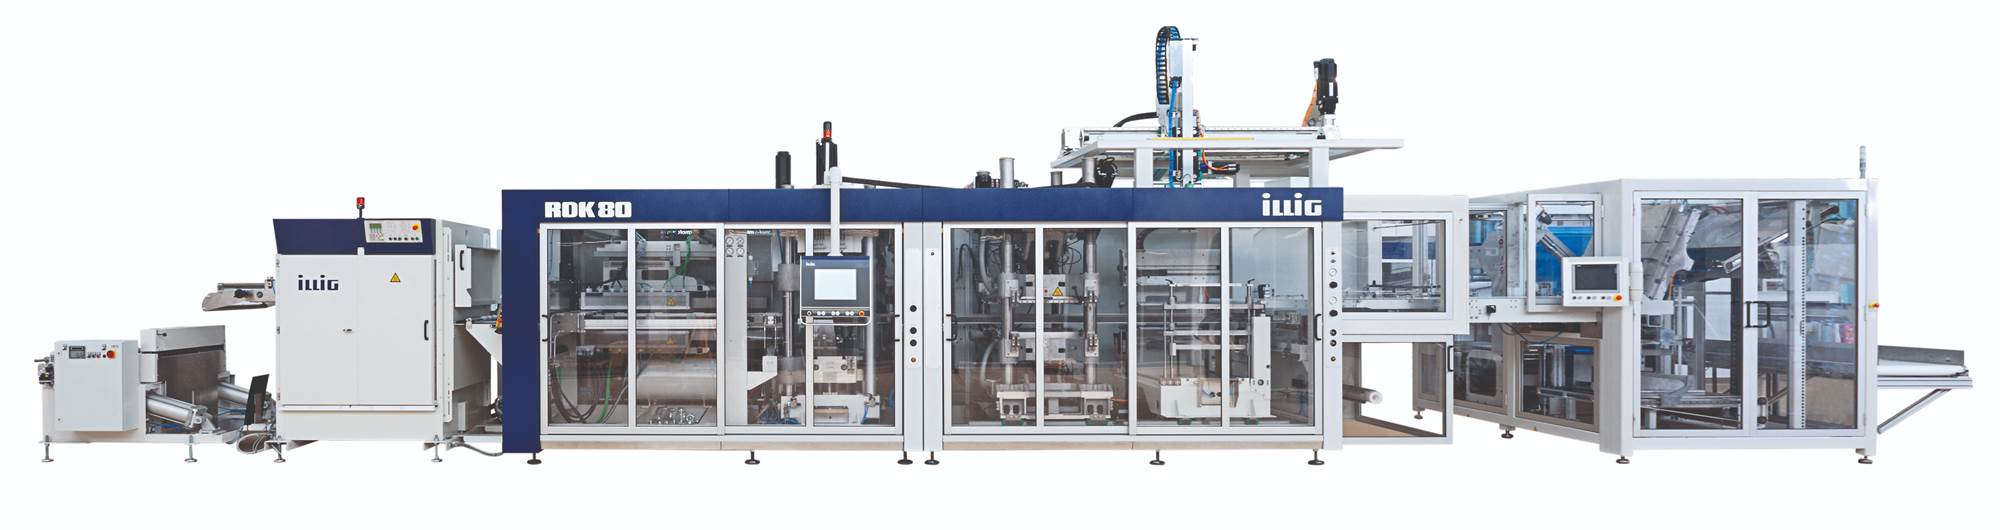 Illig inline thermoforming machine for packaging